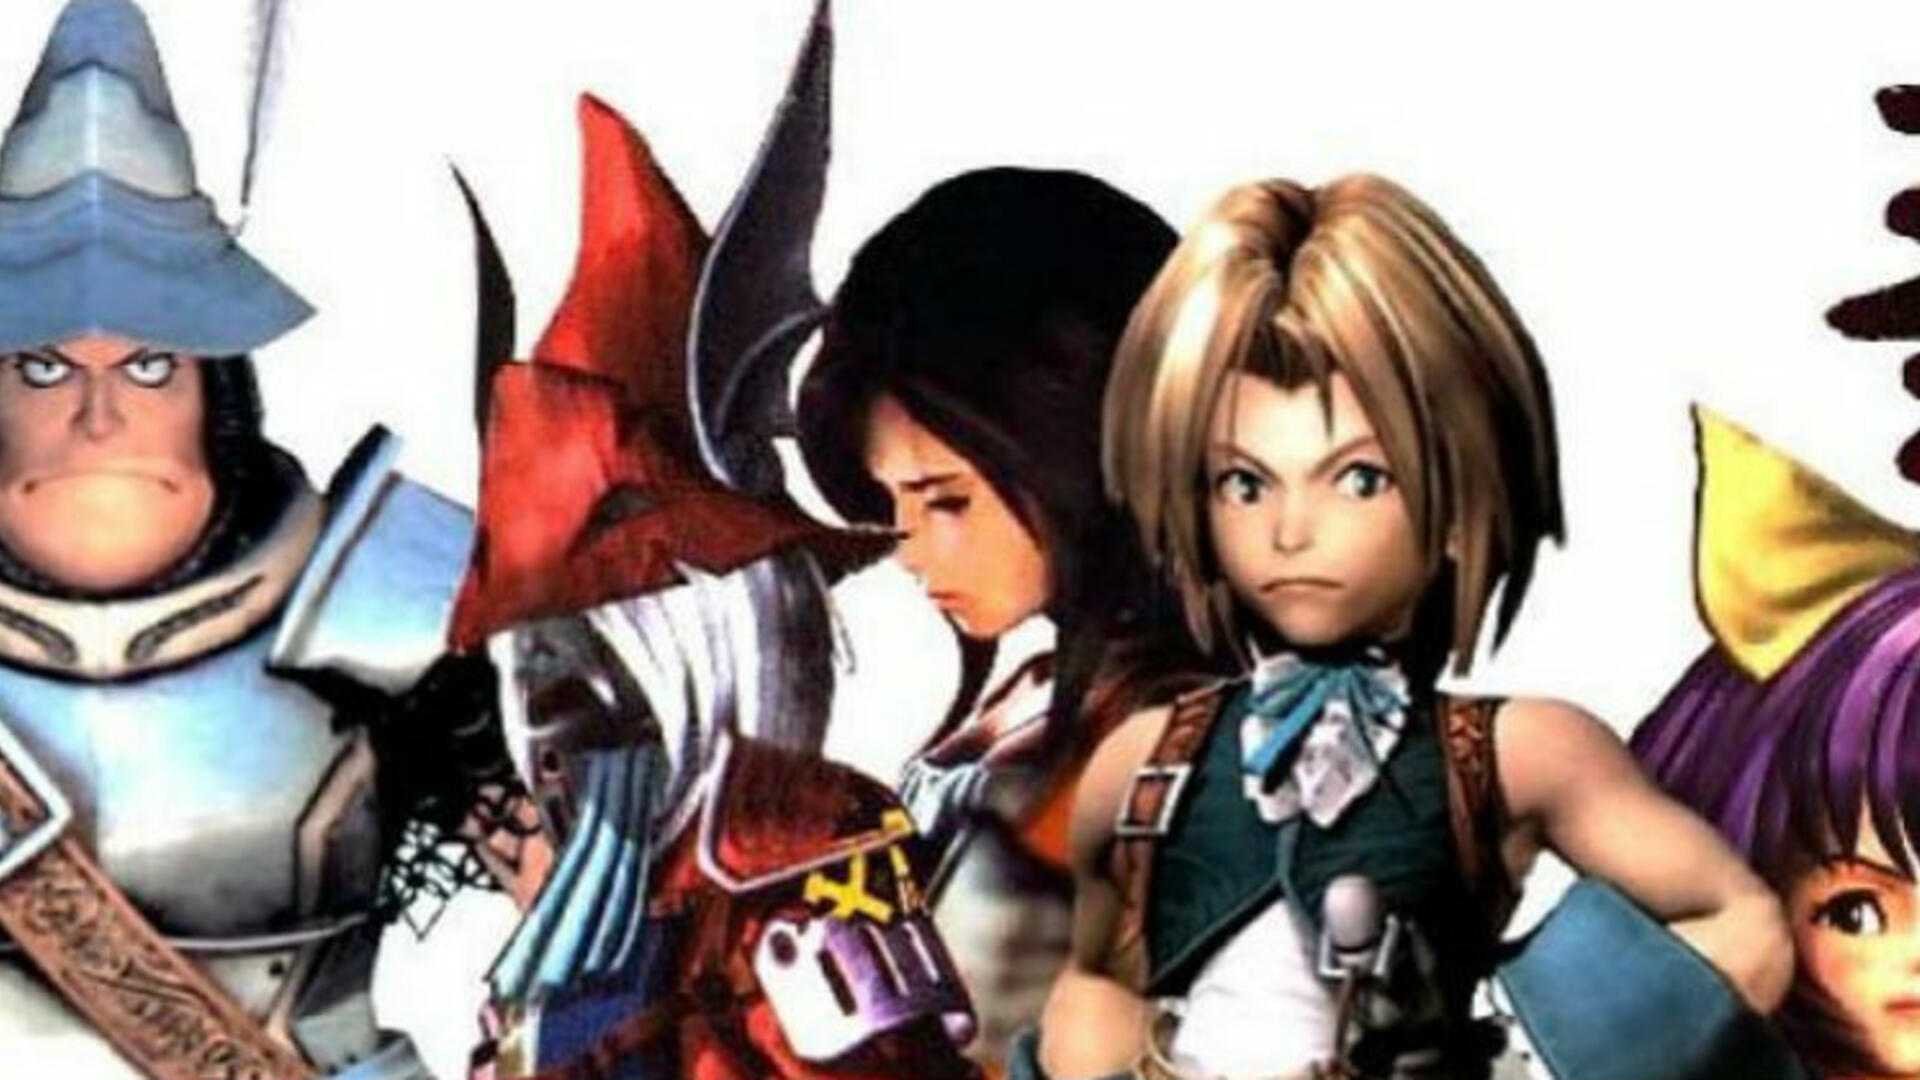 Final Fantasy IX is On Mobile, But You Need High-End